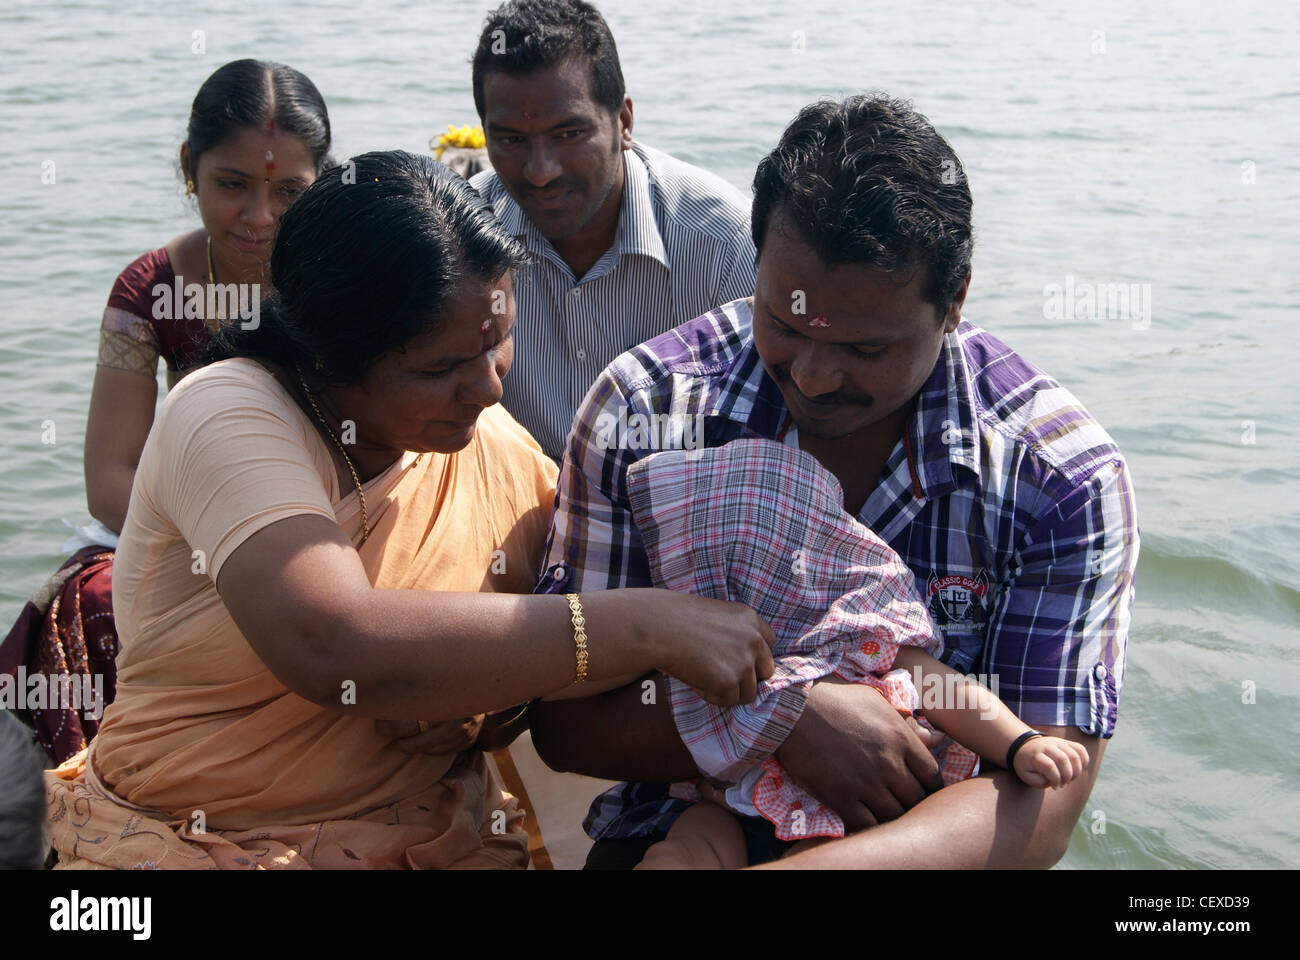 Funny scene from canoe Boat Journey through backwaters of Kerala.Baby head is covered with cloth for protecting - Stock Image